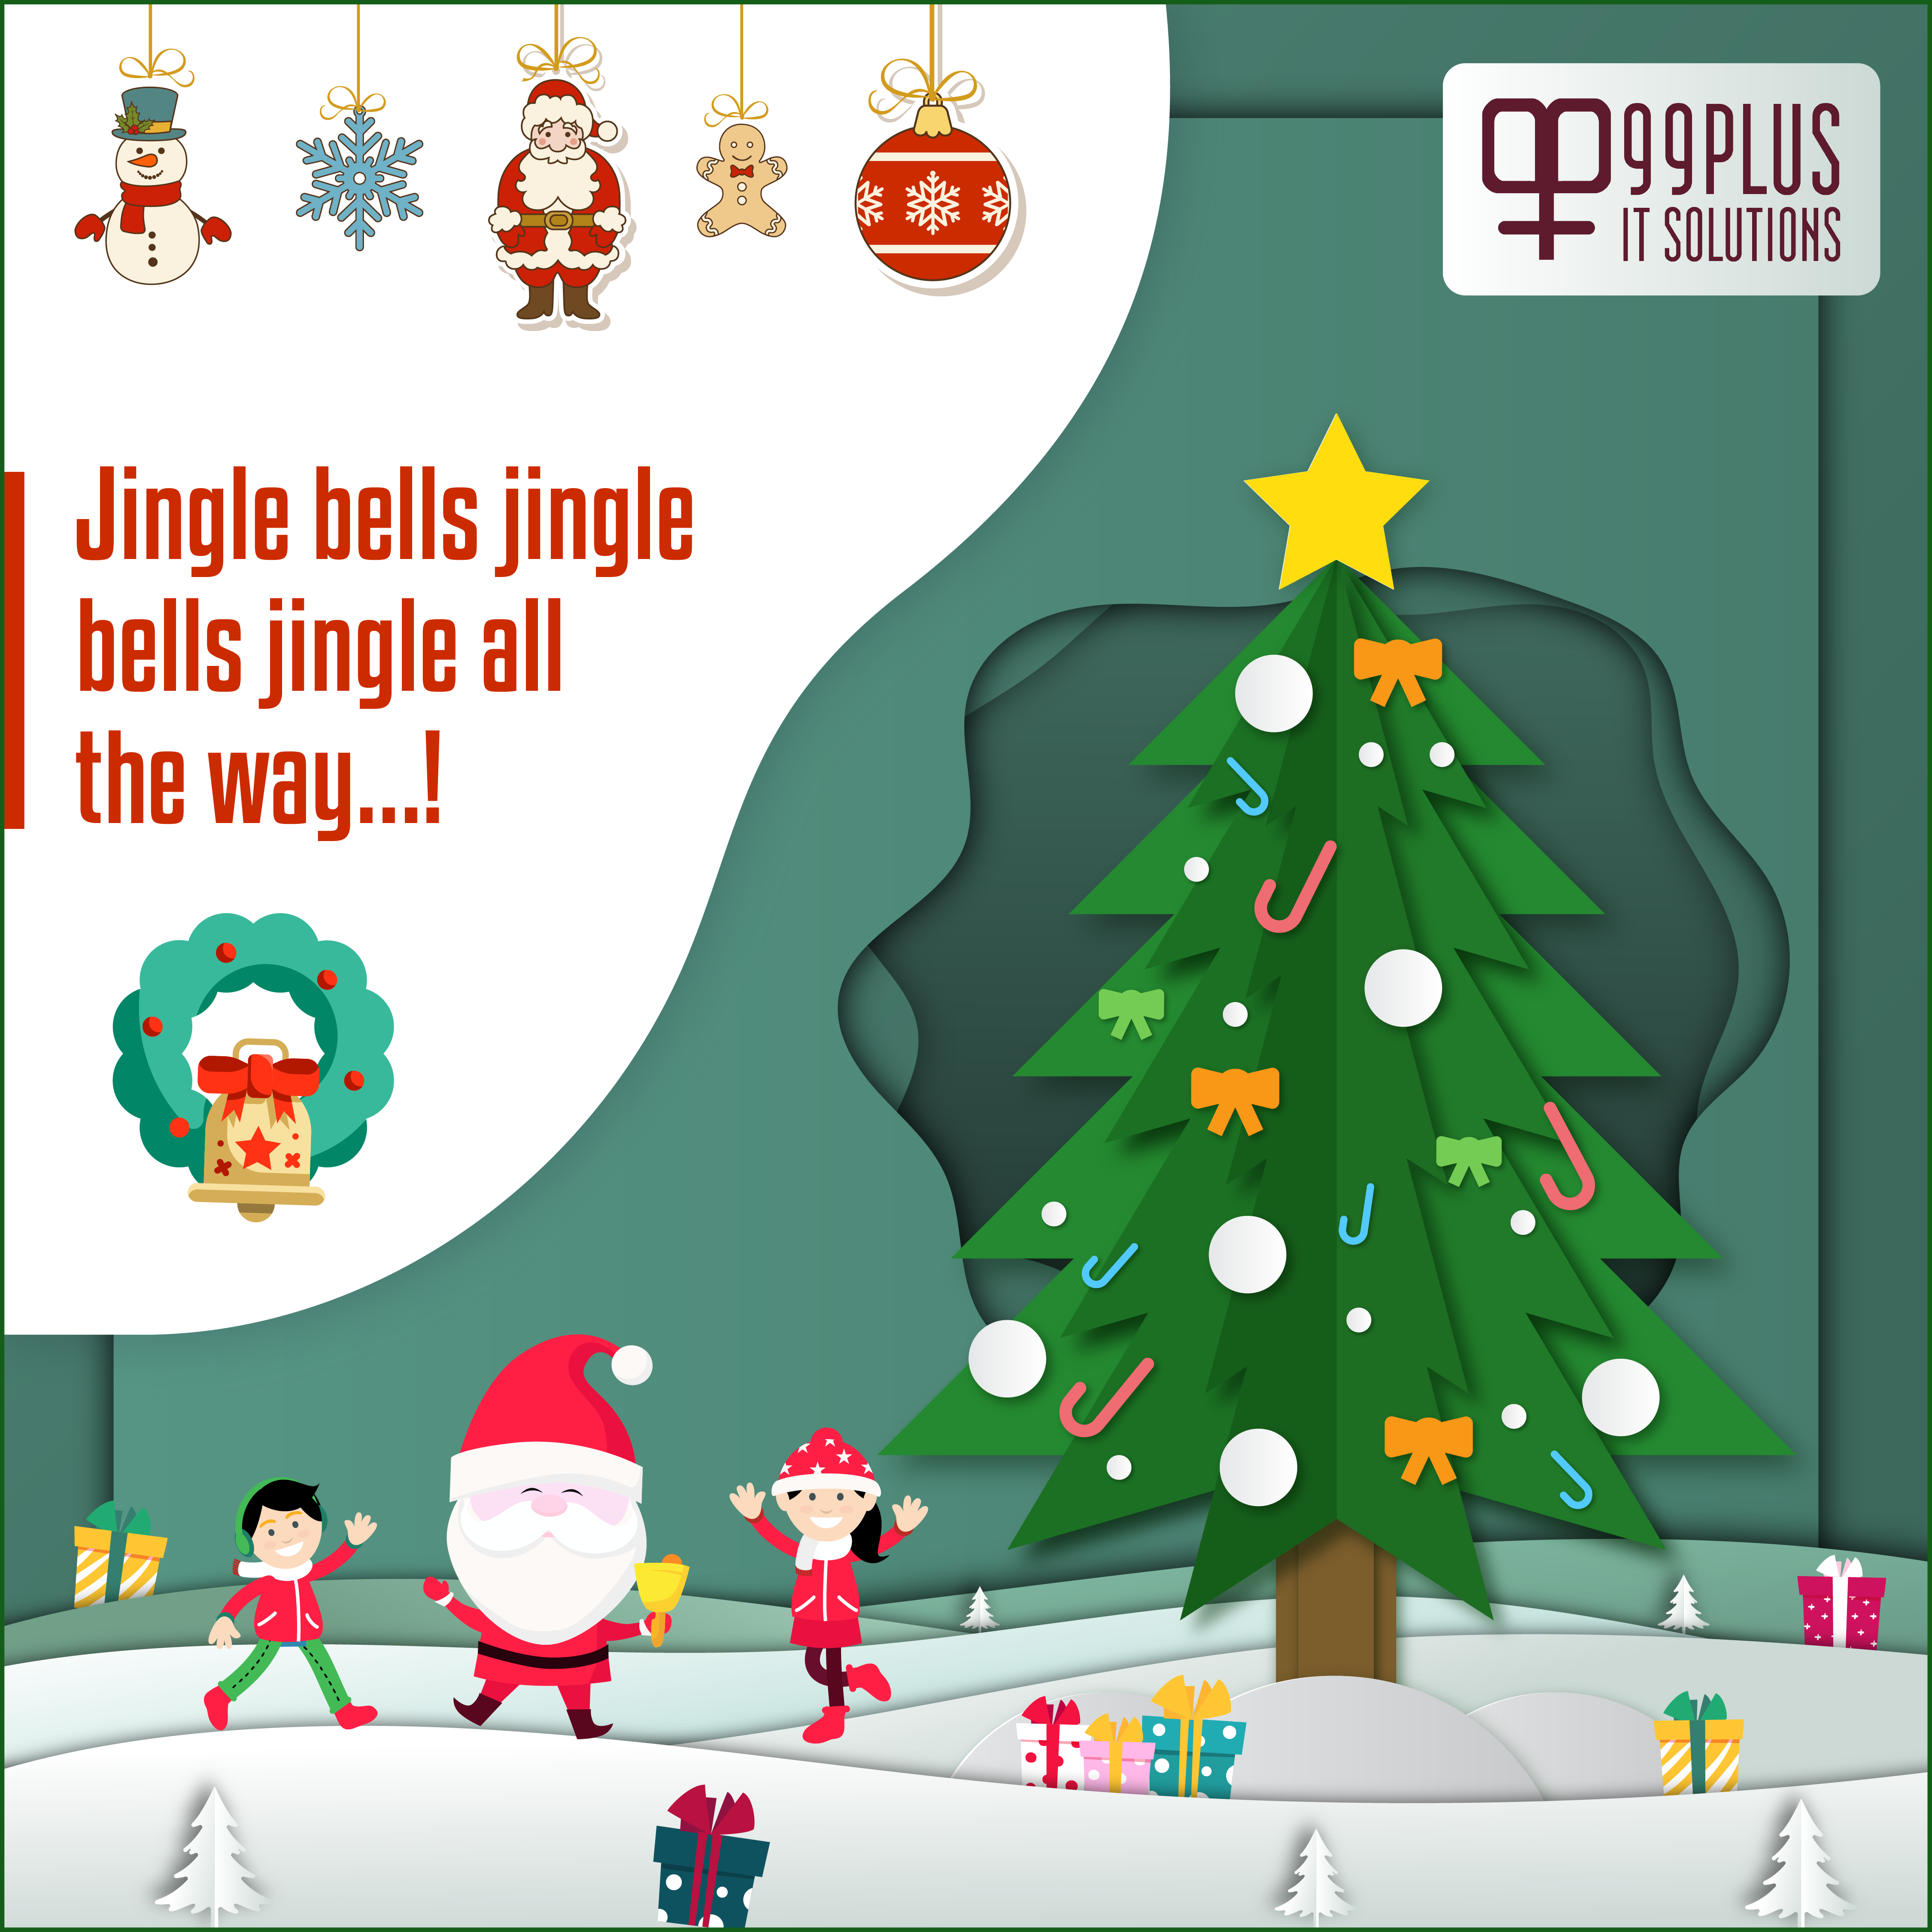 Graphic Design Services Jingle All The Way Graphic Design Services Graphic Design Agency